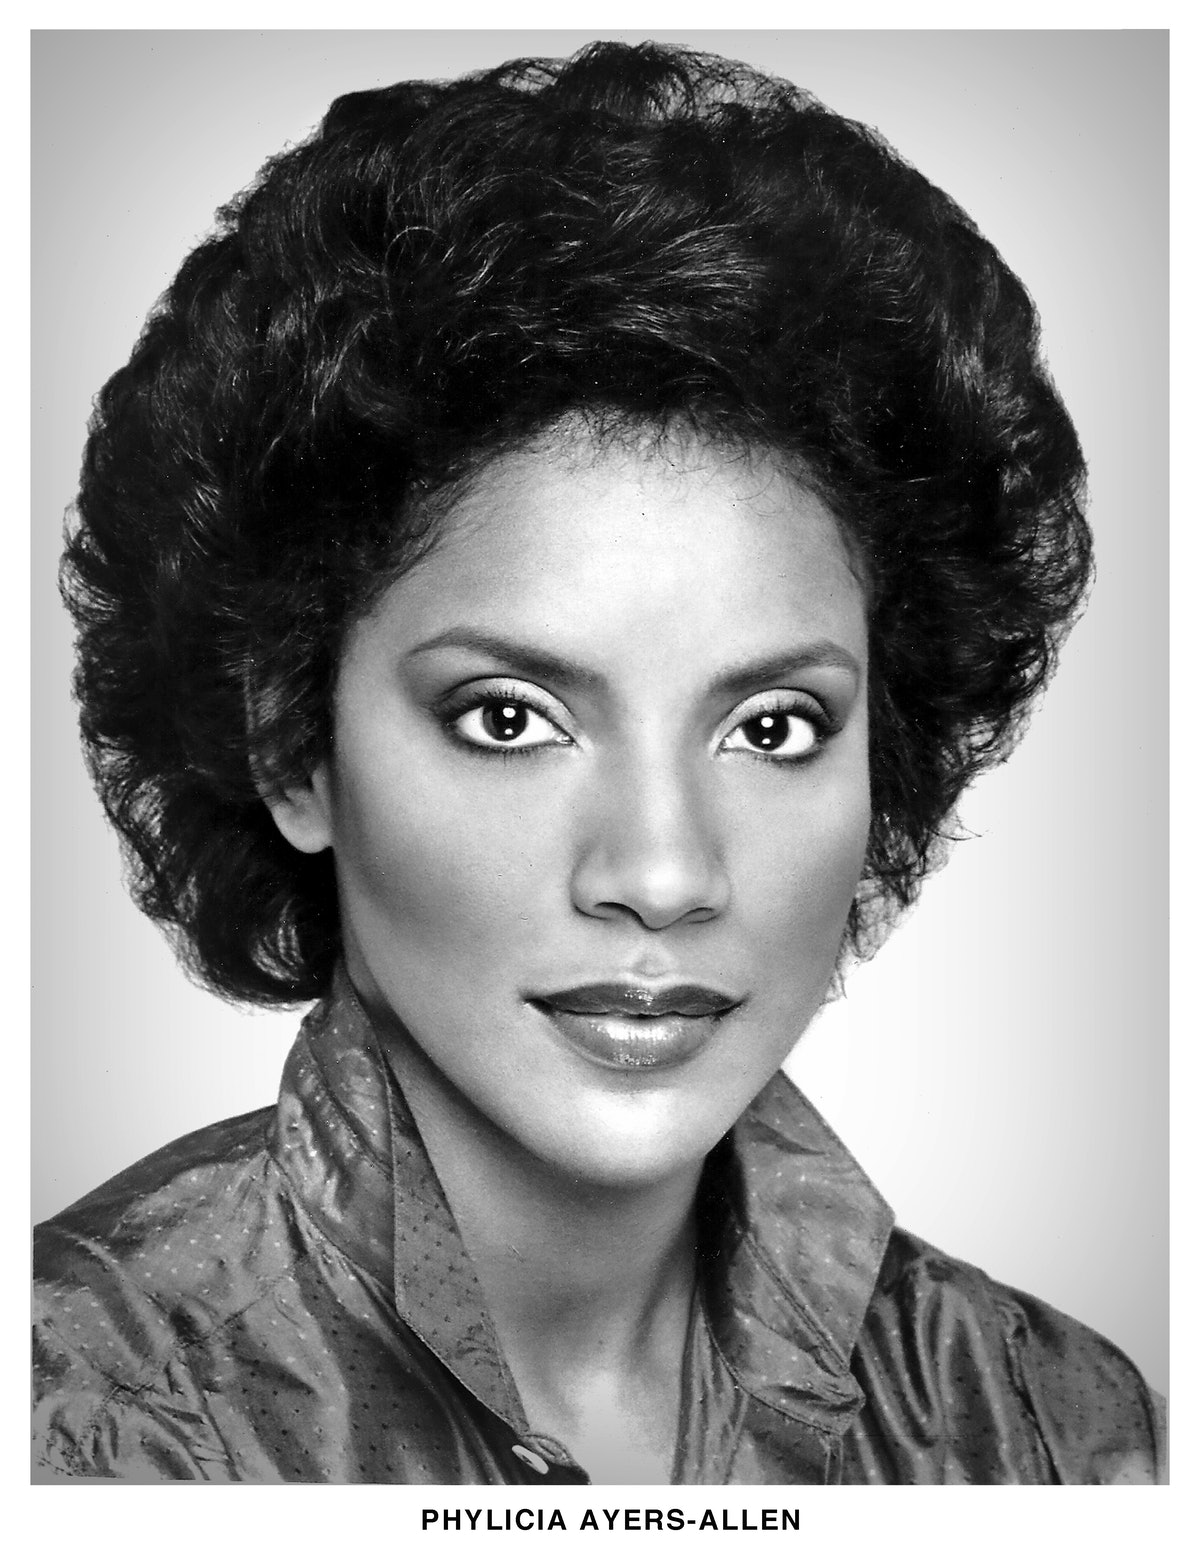 Phylicia Rashad, then Patricia Ayers-Allen, pictured in a headshot from 1975